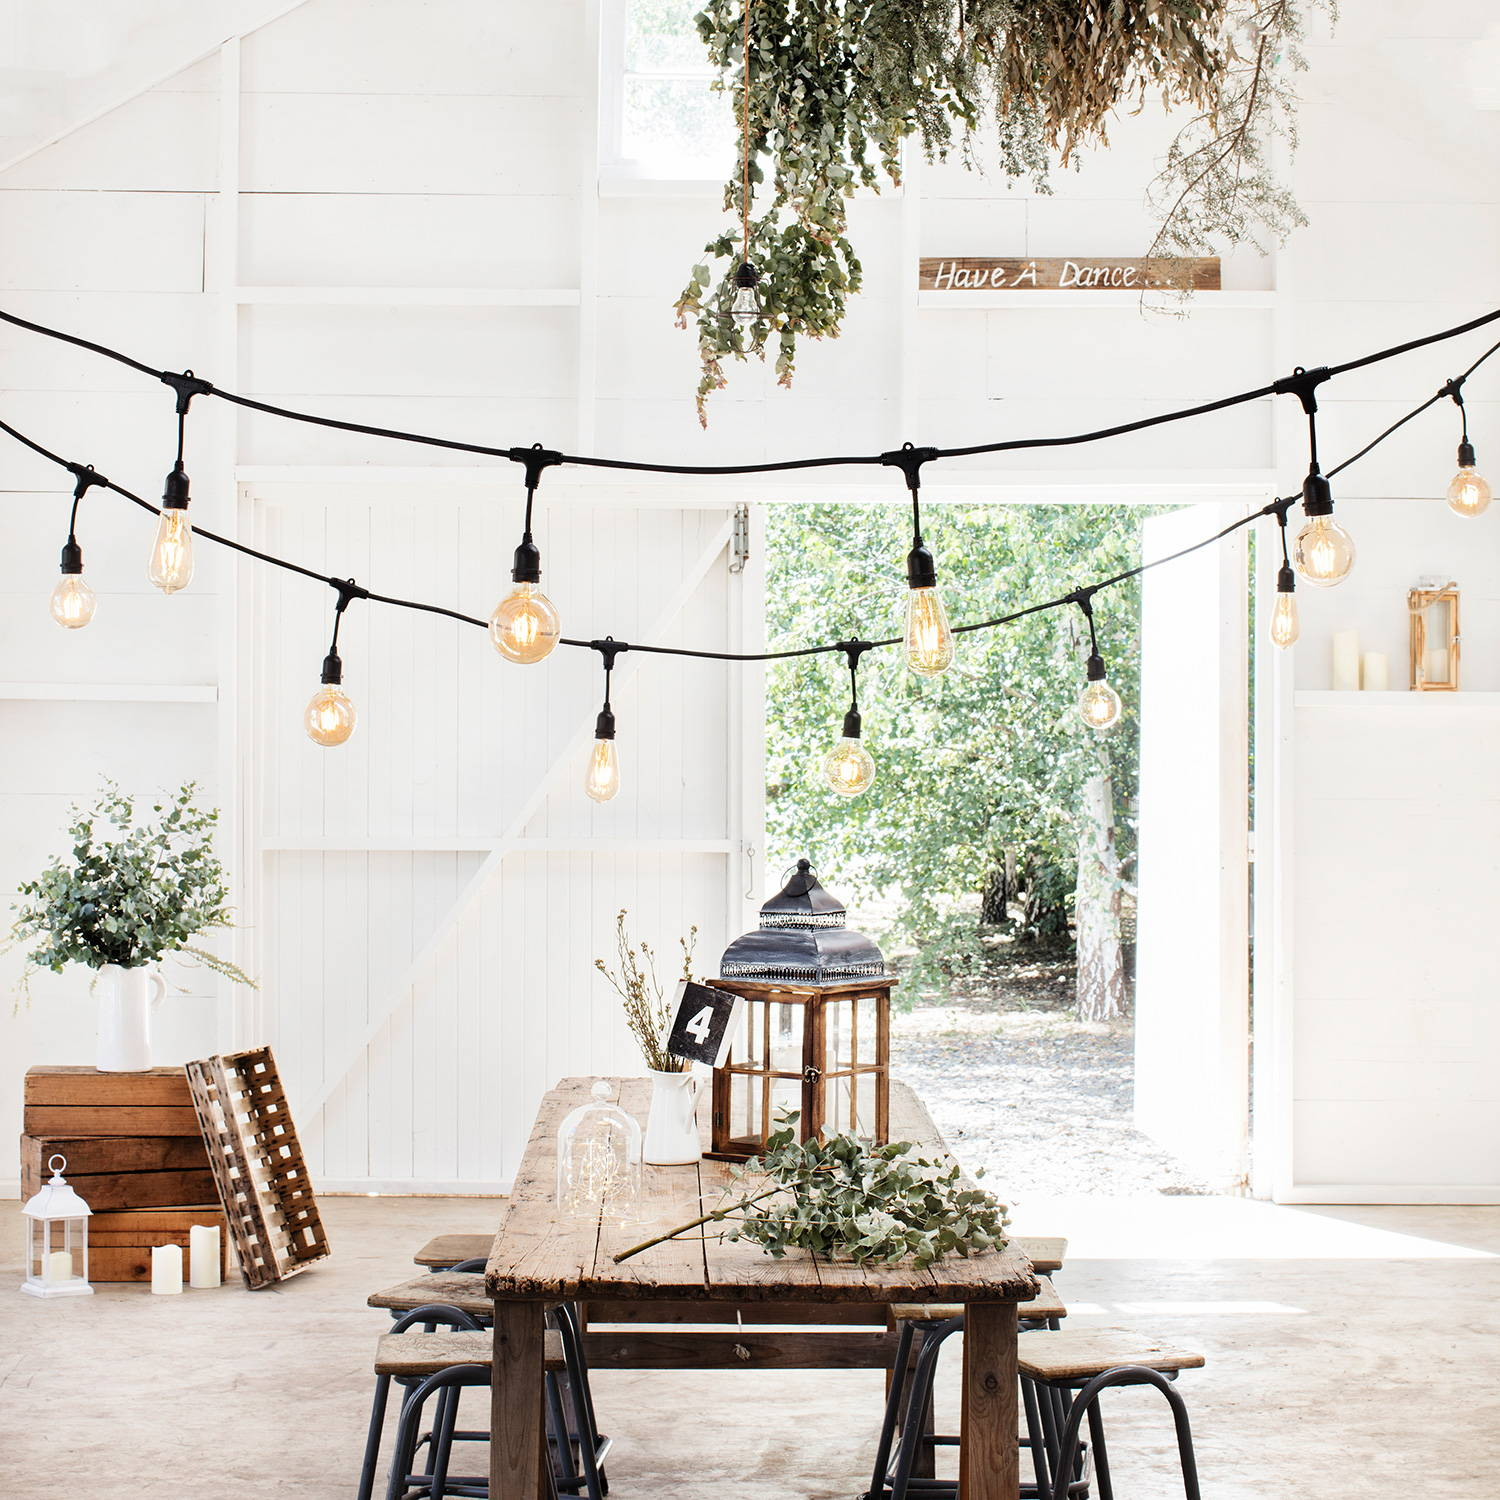 A barn wedding setting with a string of industial style festoon lights